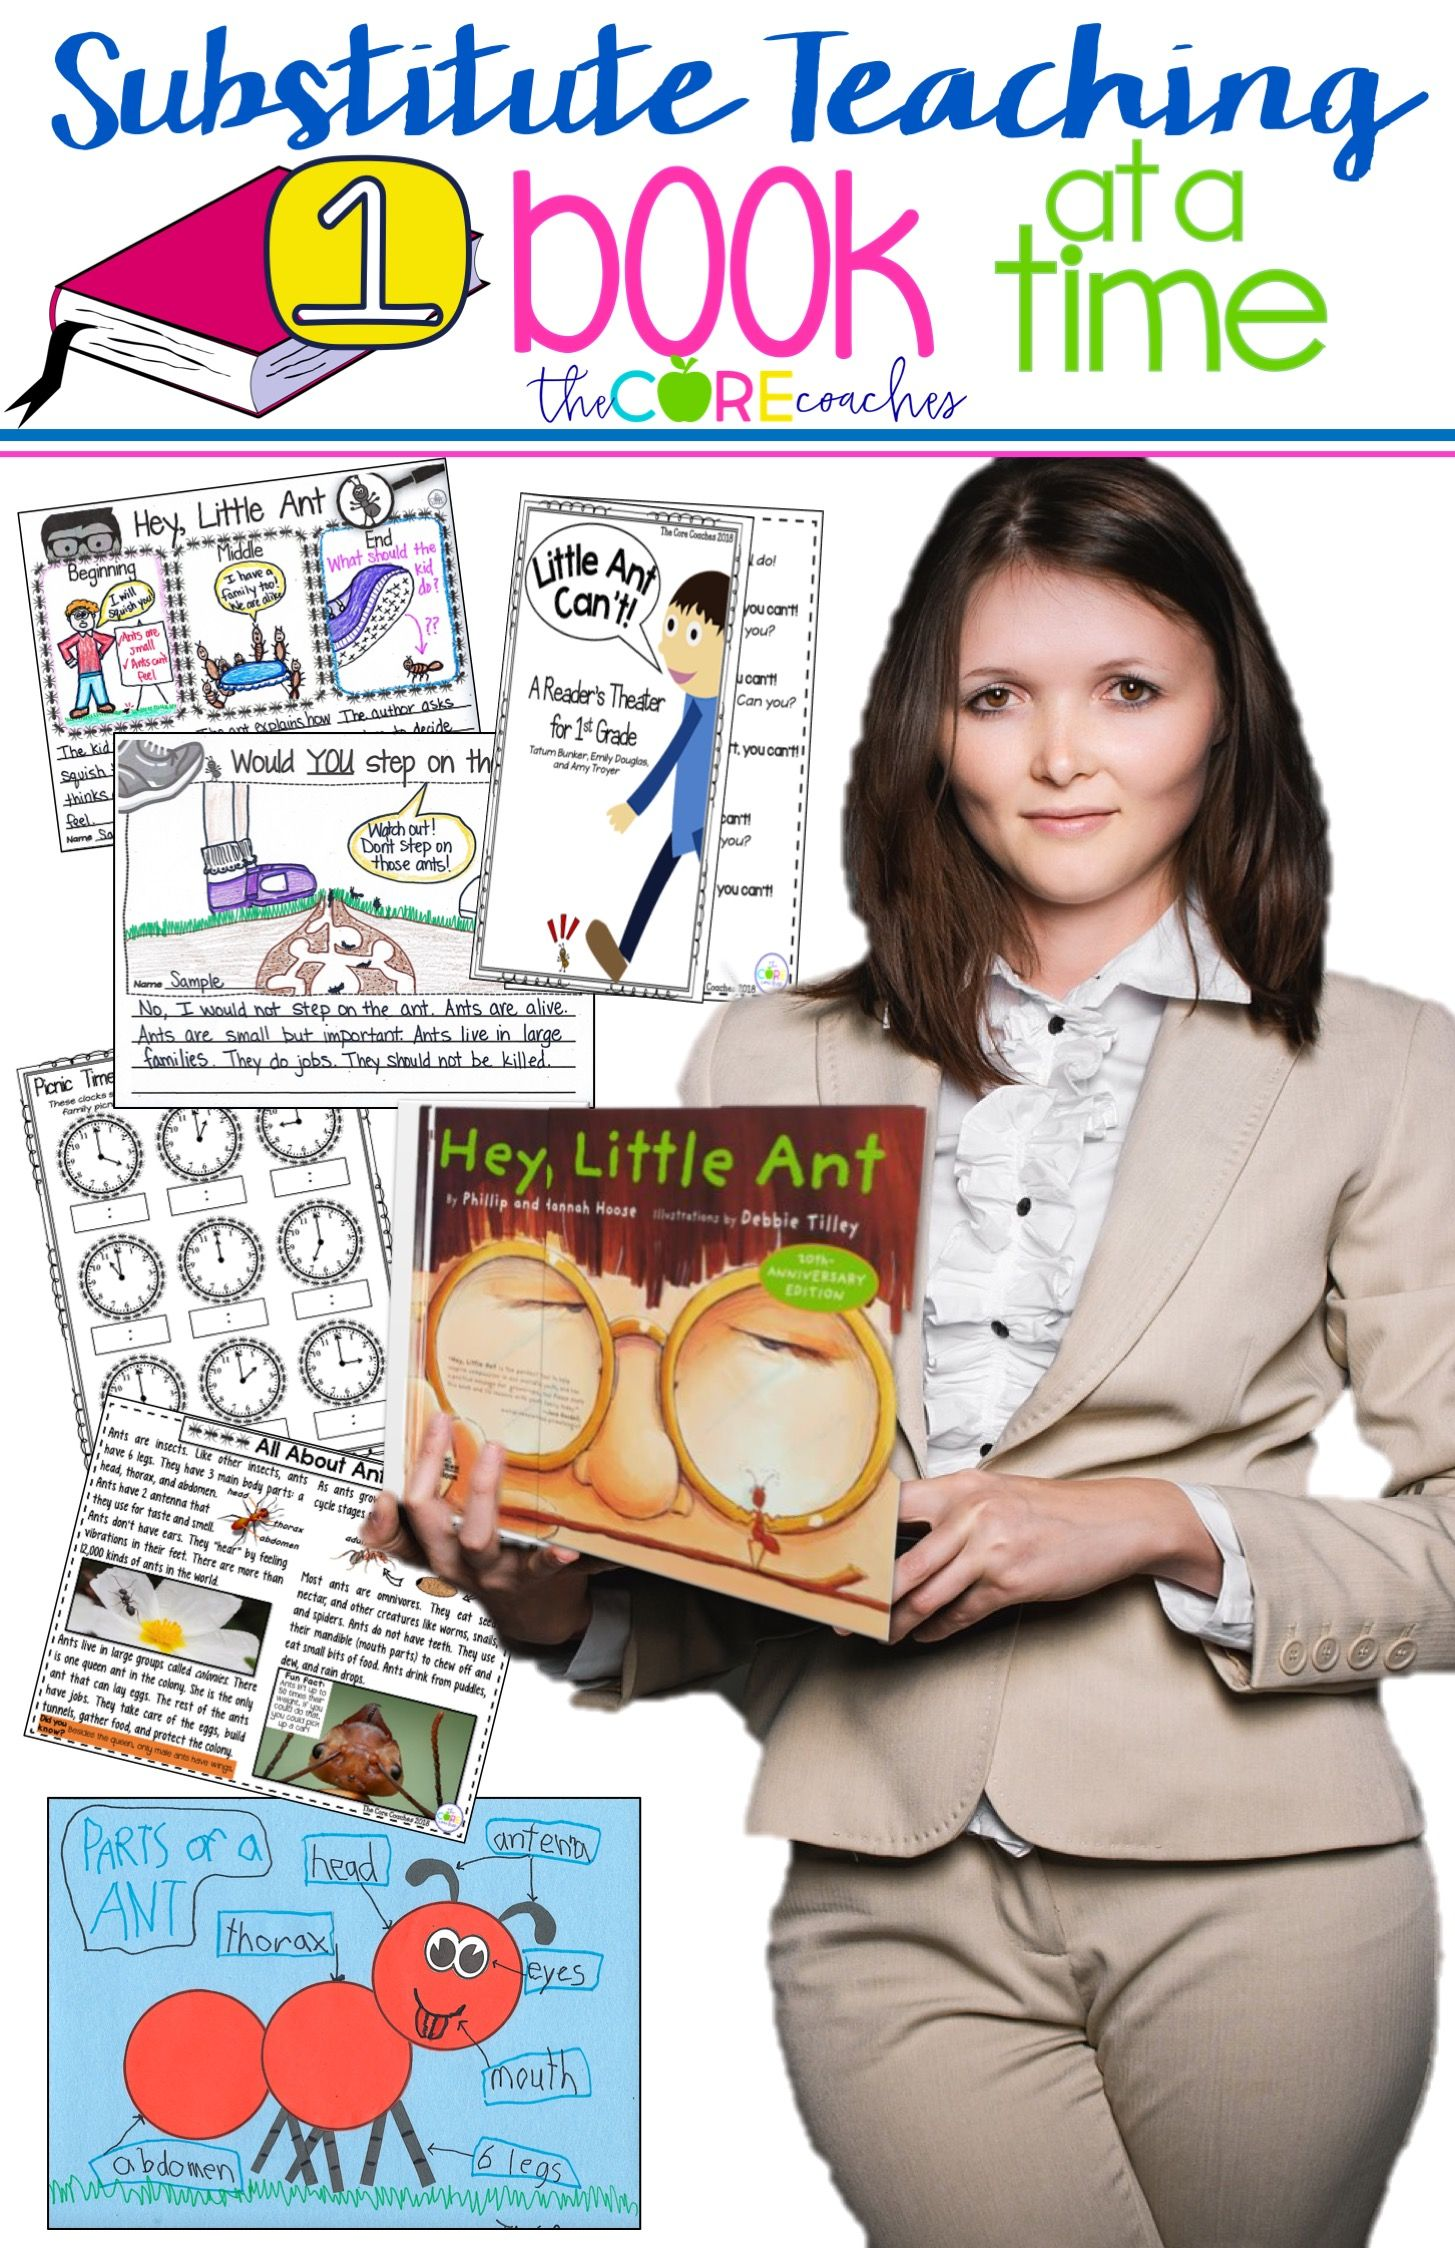 Quality 1st grade lessons for the substitute all based on the book Hey Little Ant! Perfect for an emergency. Substitute Teaching 1 Book at a Time by the Core Coaches